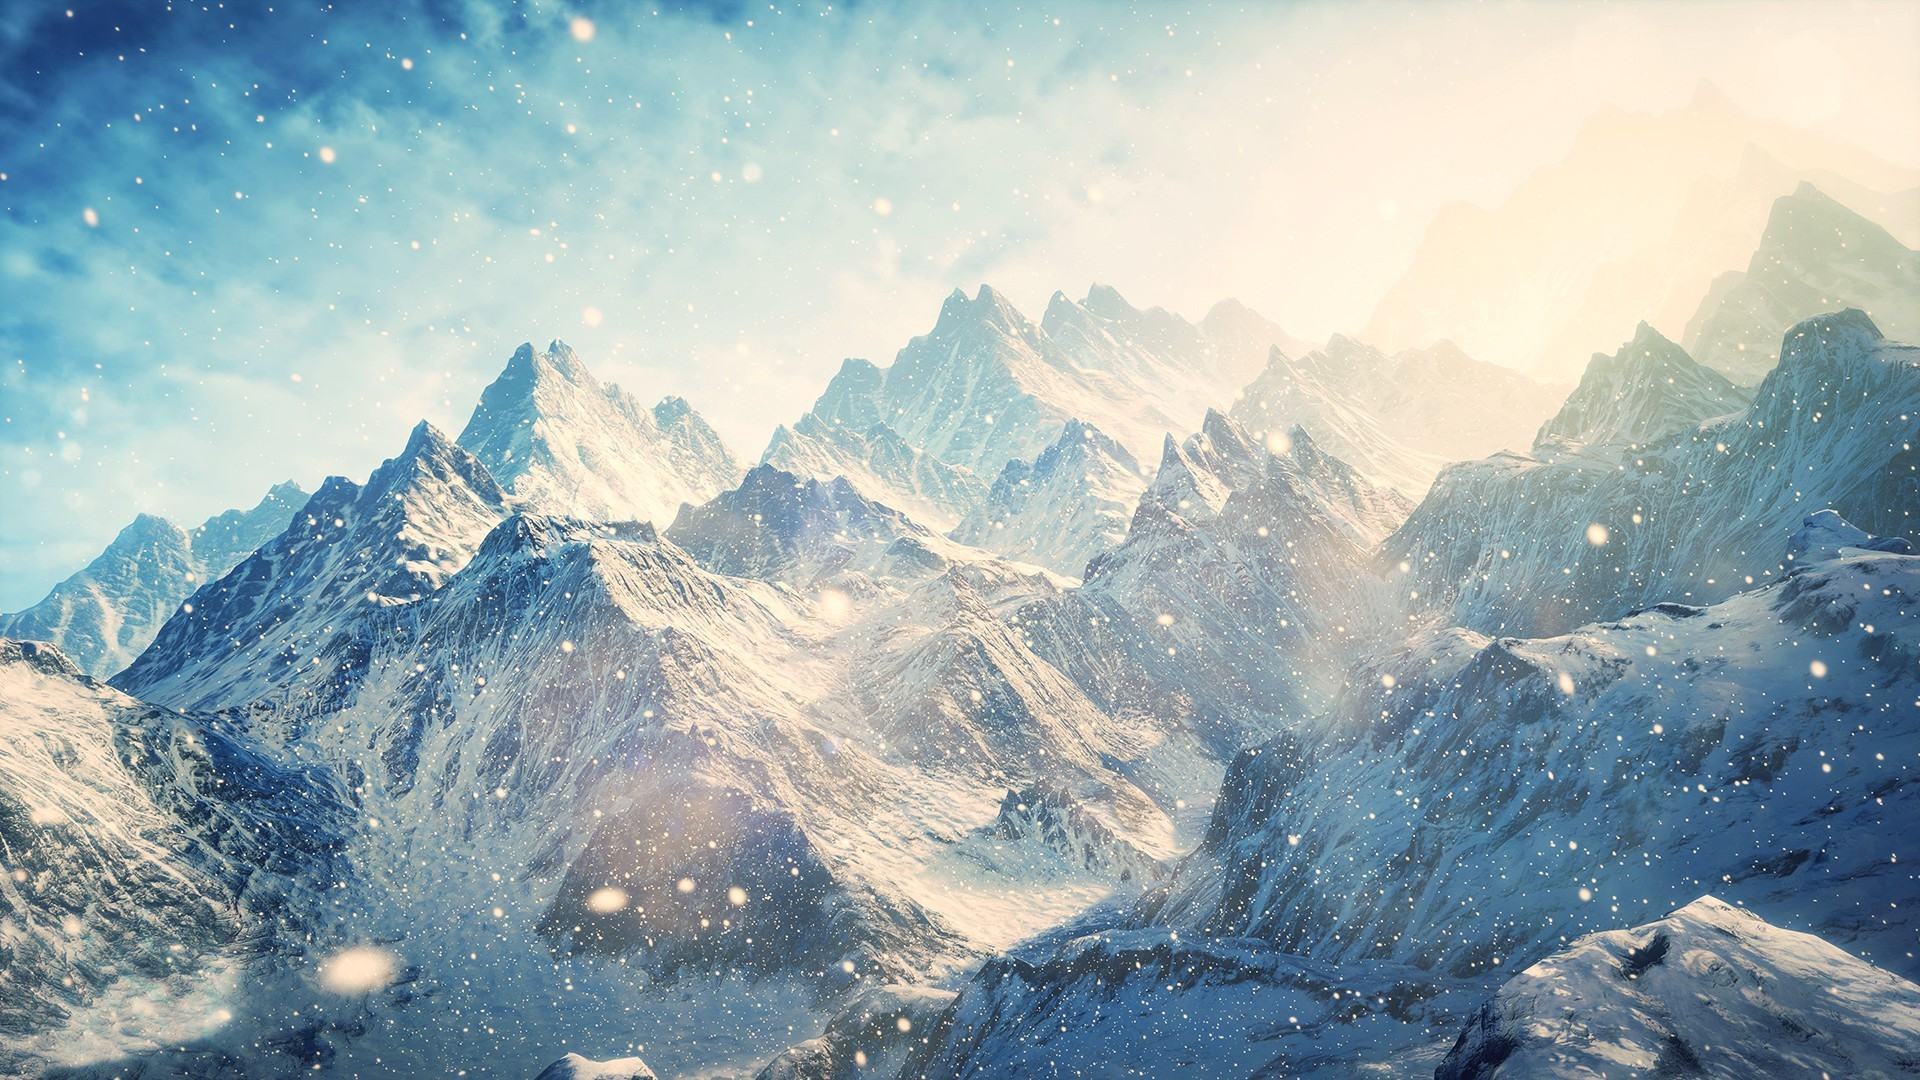 Snow Mountain Wallpaper HD - WallpaperSafari